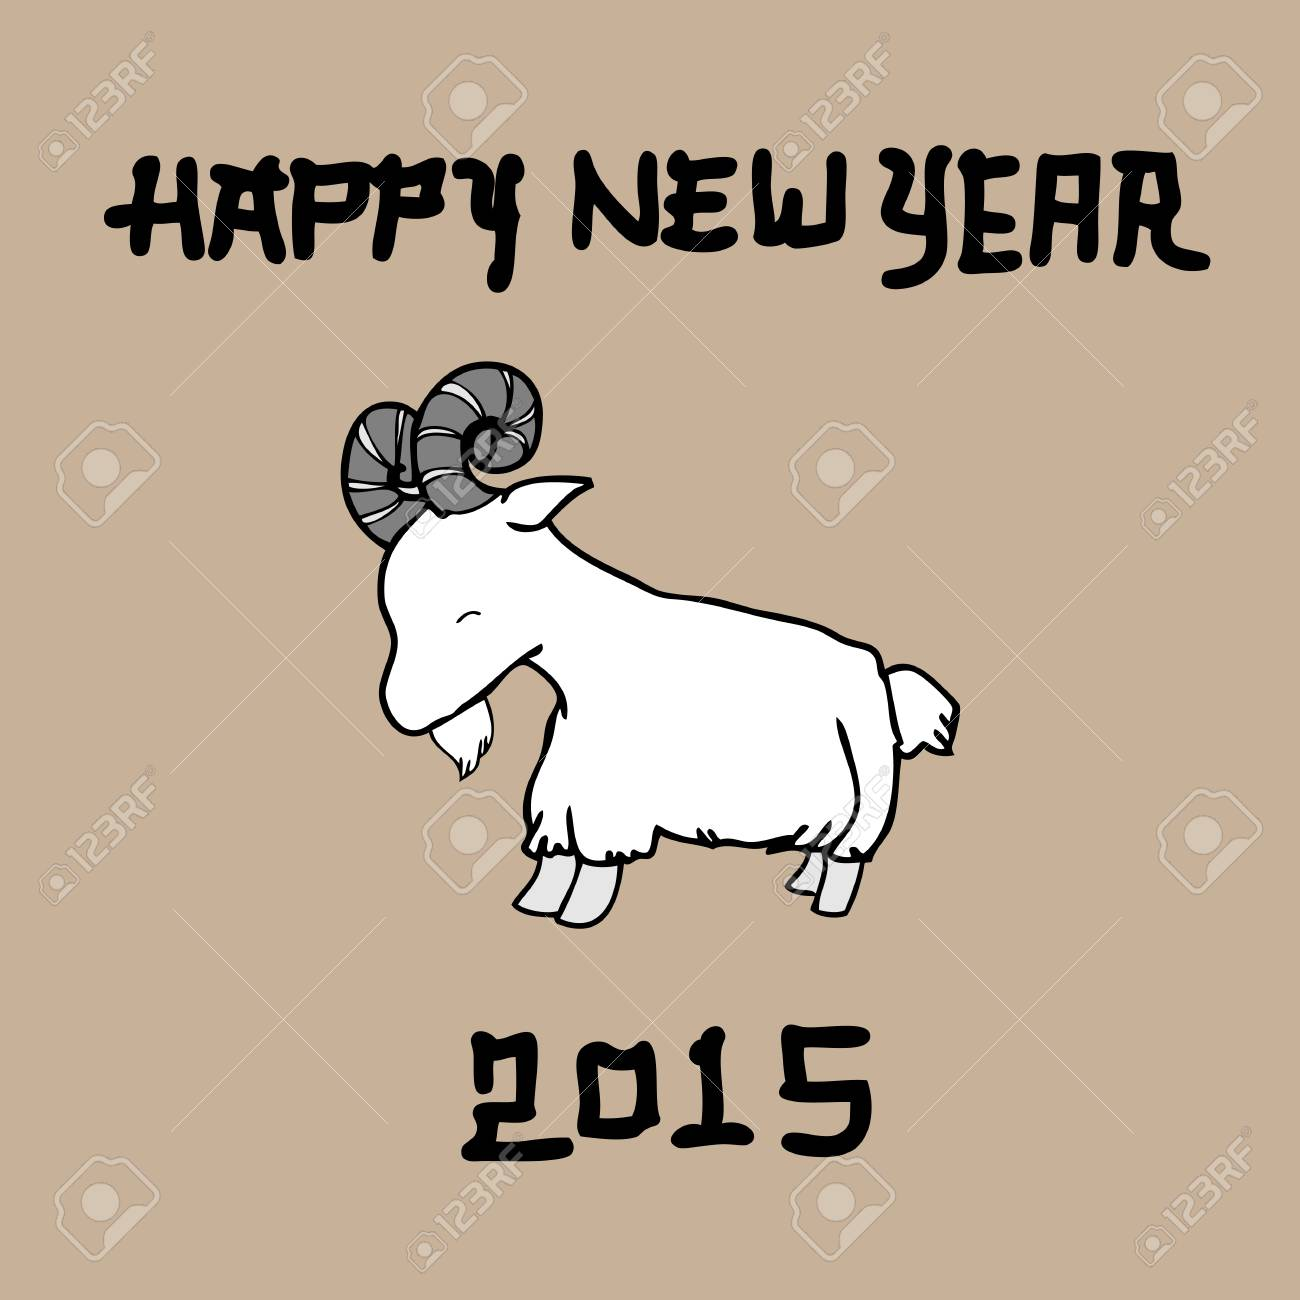 goat happy new year 2015 chinese brush drawing stock vector 34568161